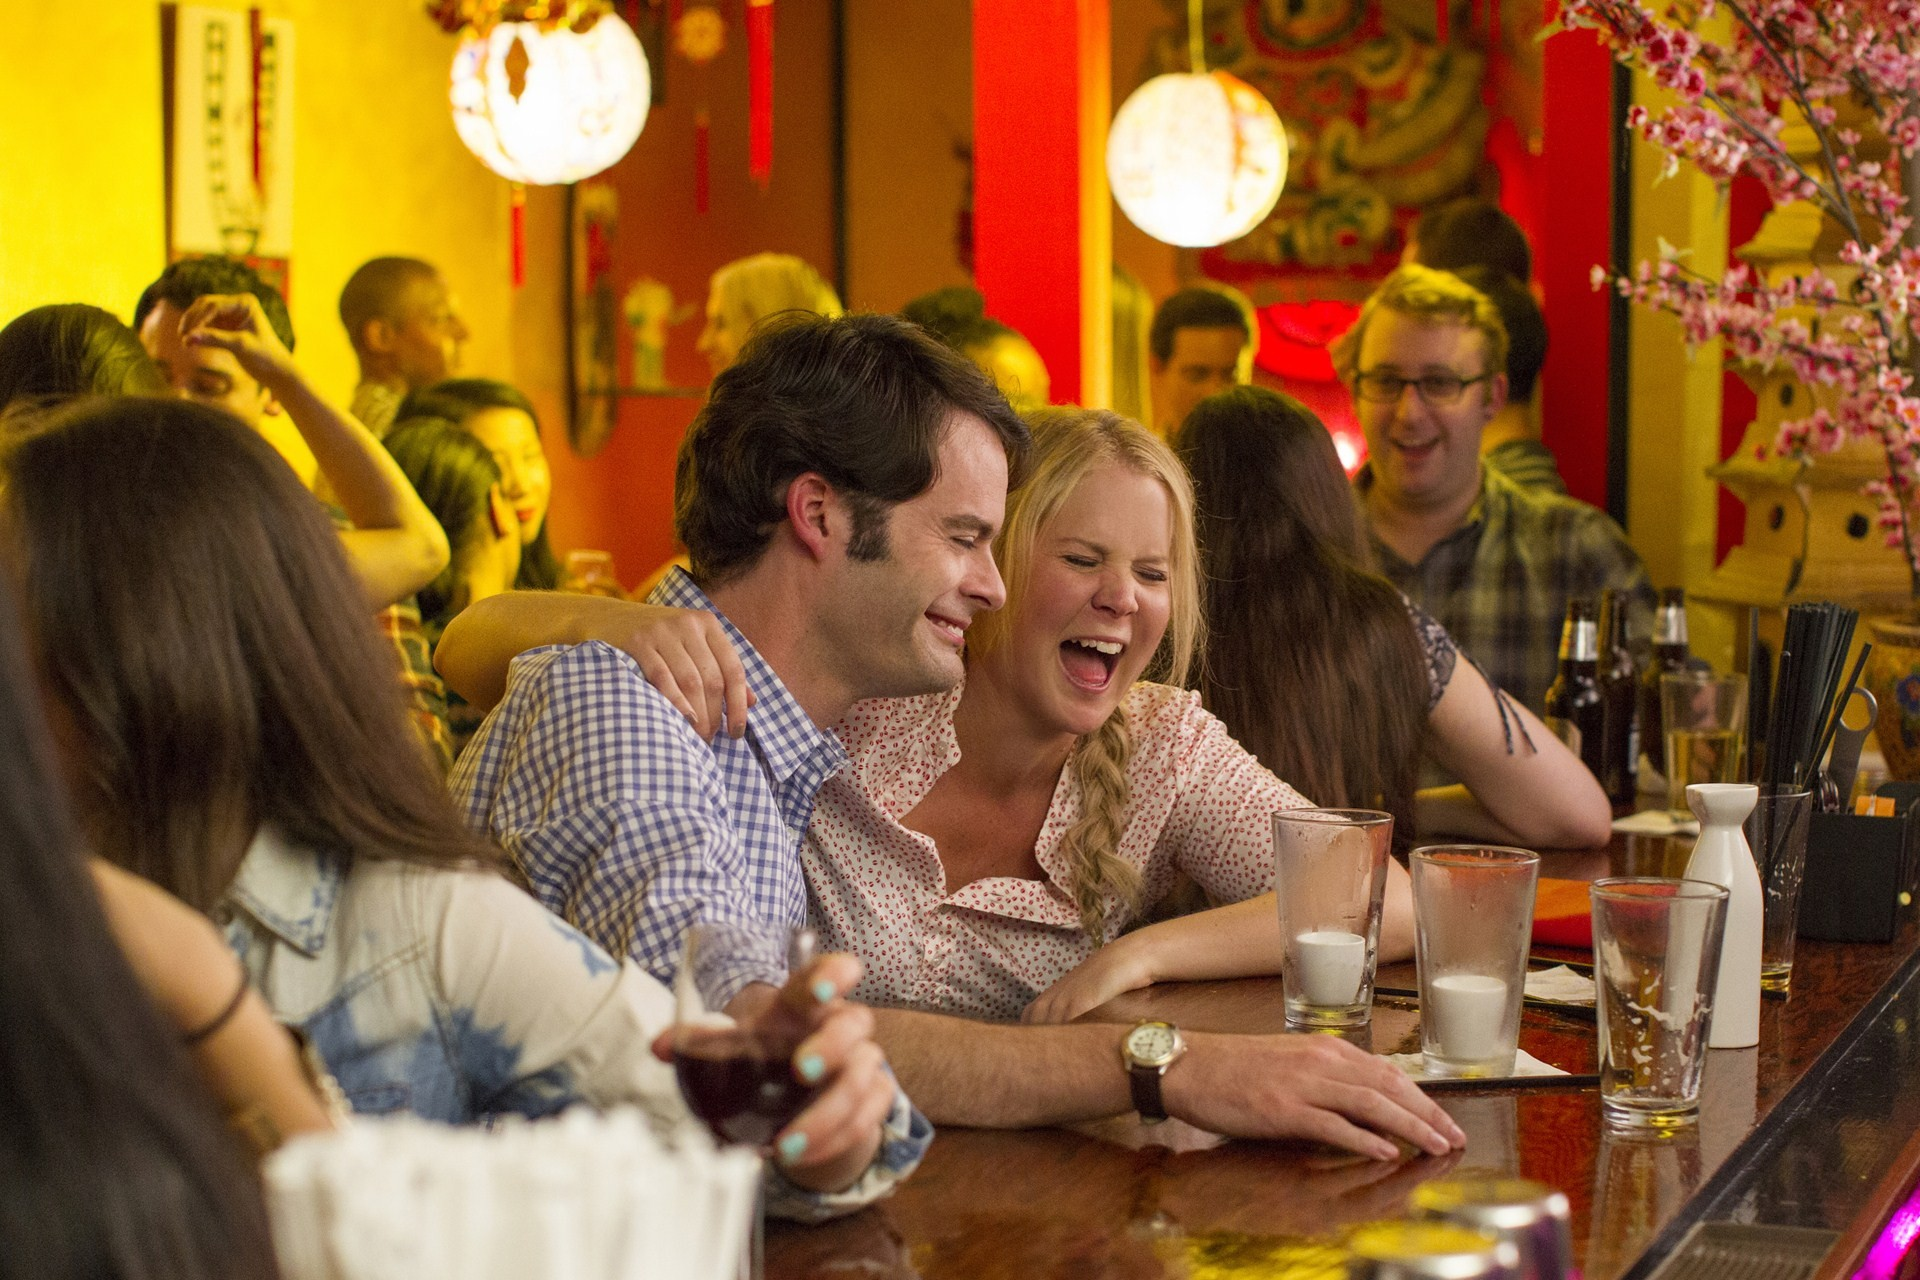 trainwreck review film takeout